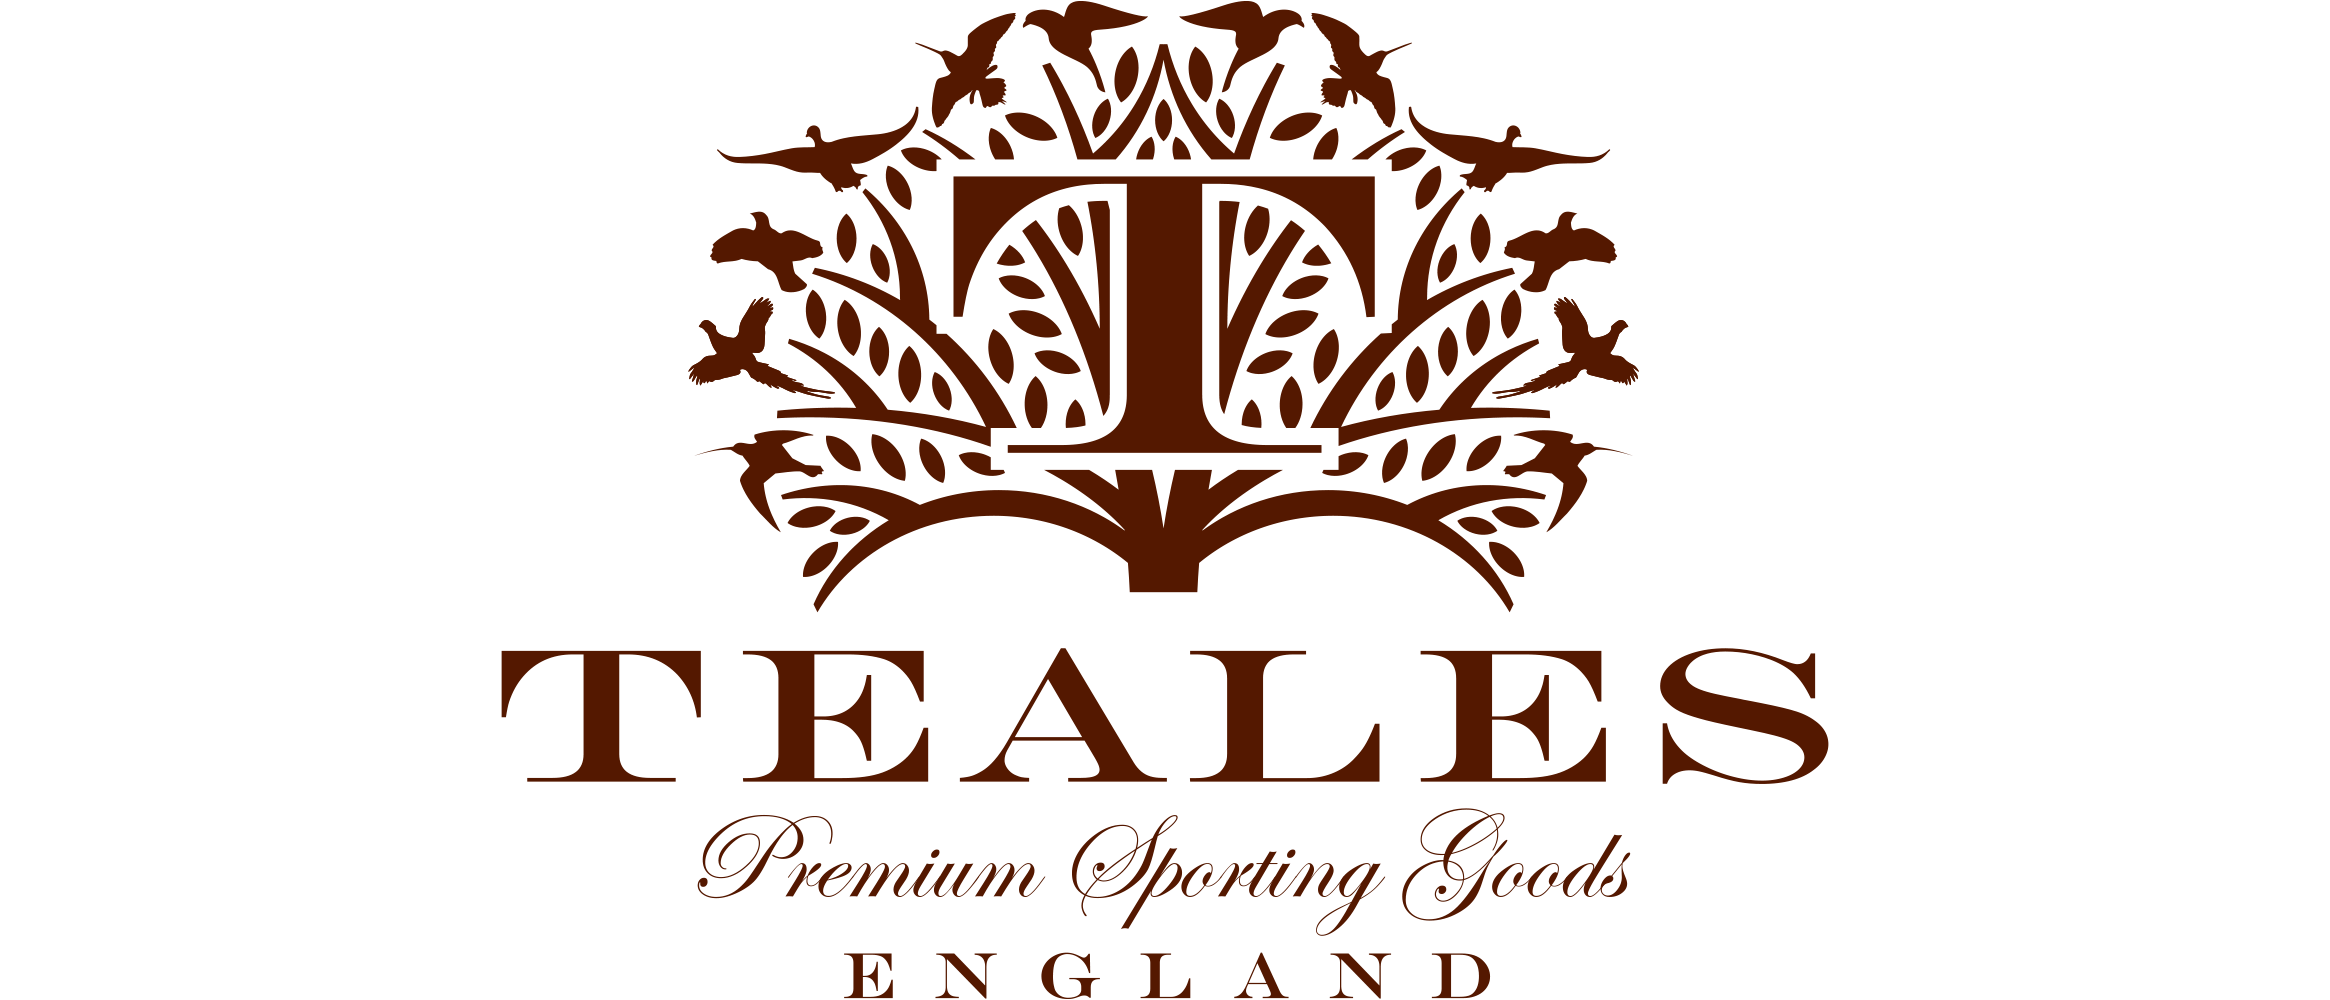 Teales.co.uk